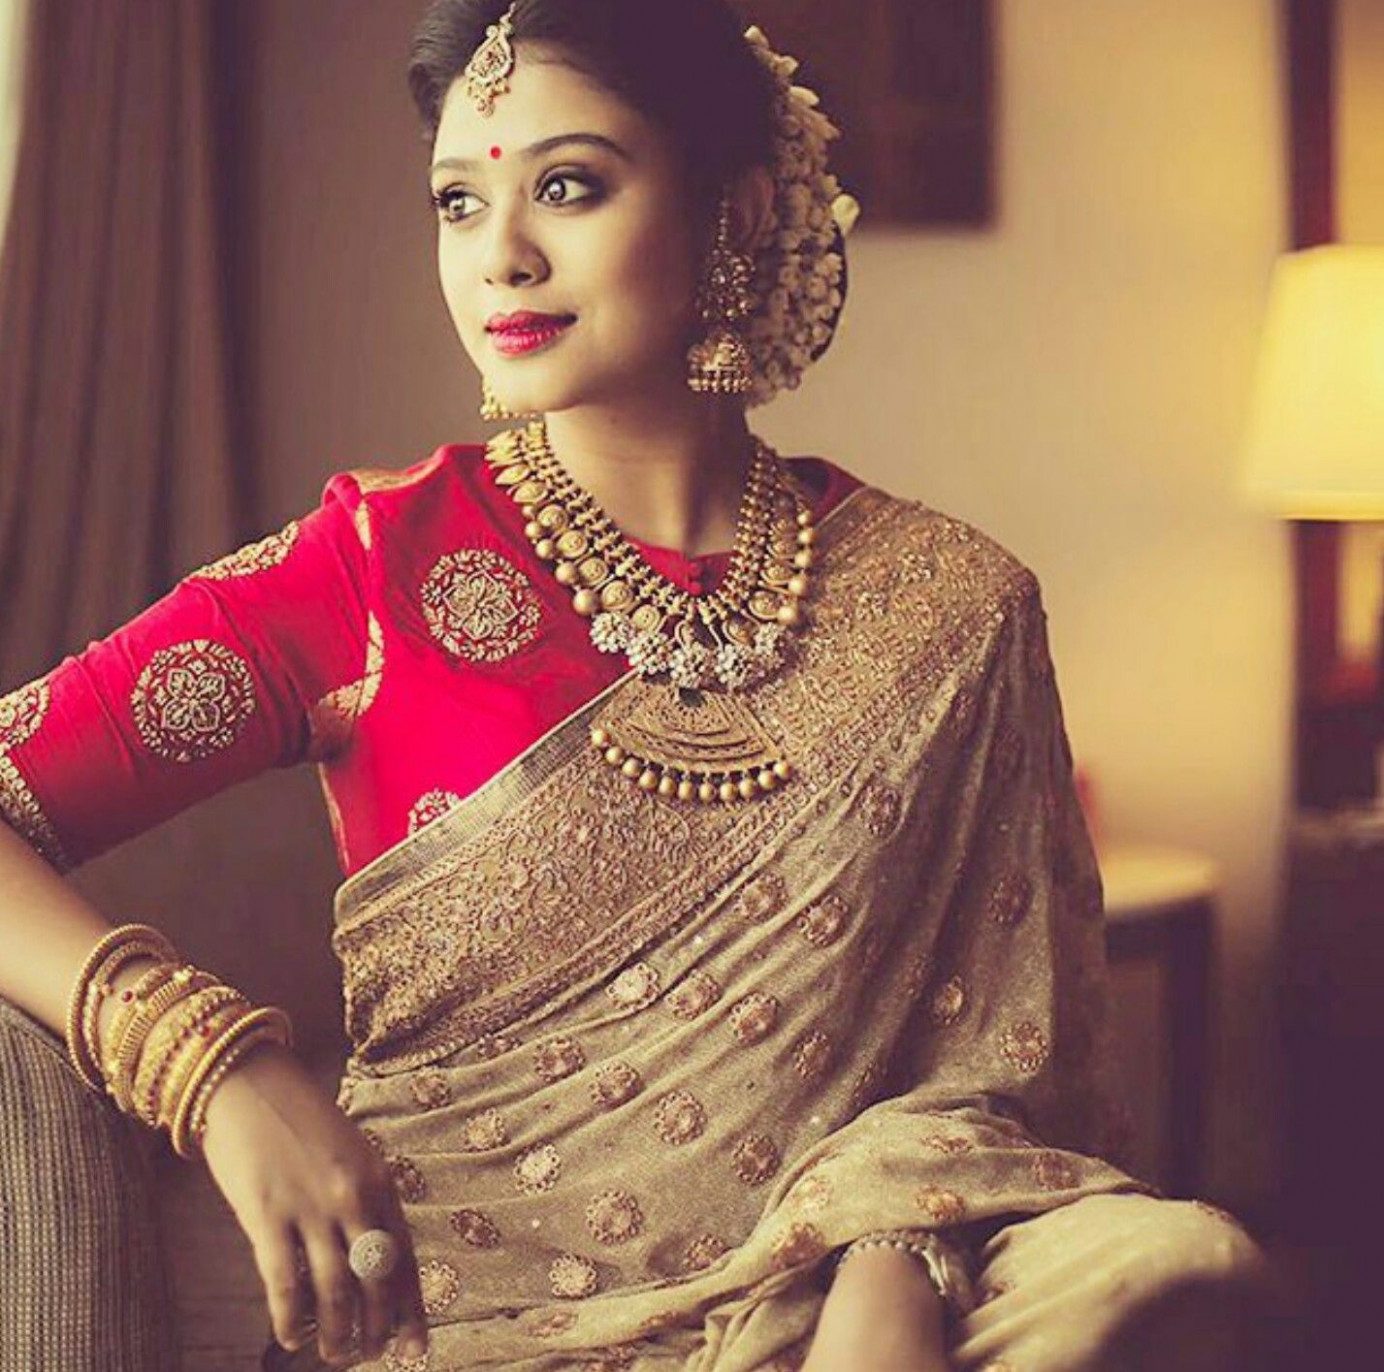 Gold jewelry, silk sari and blouse, and fresh jasmines in